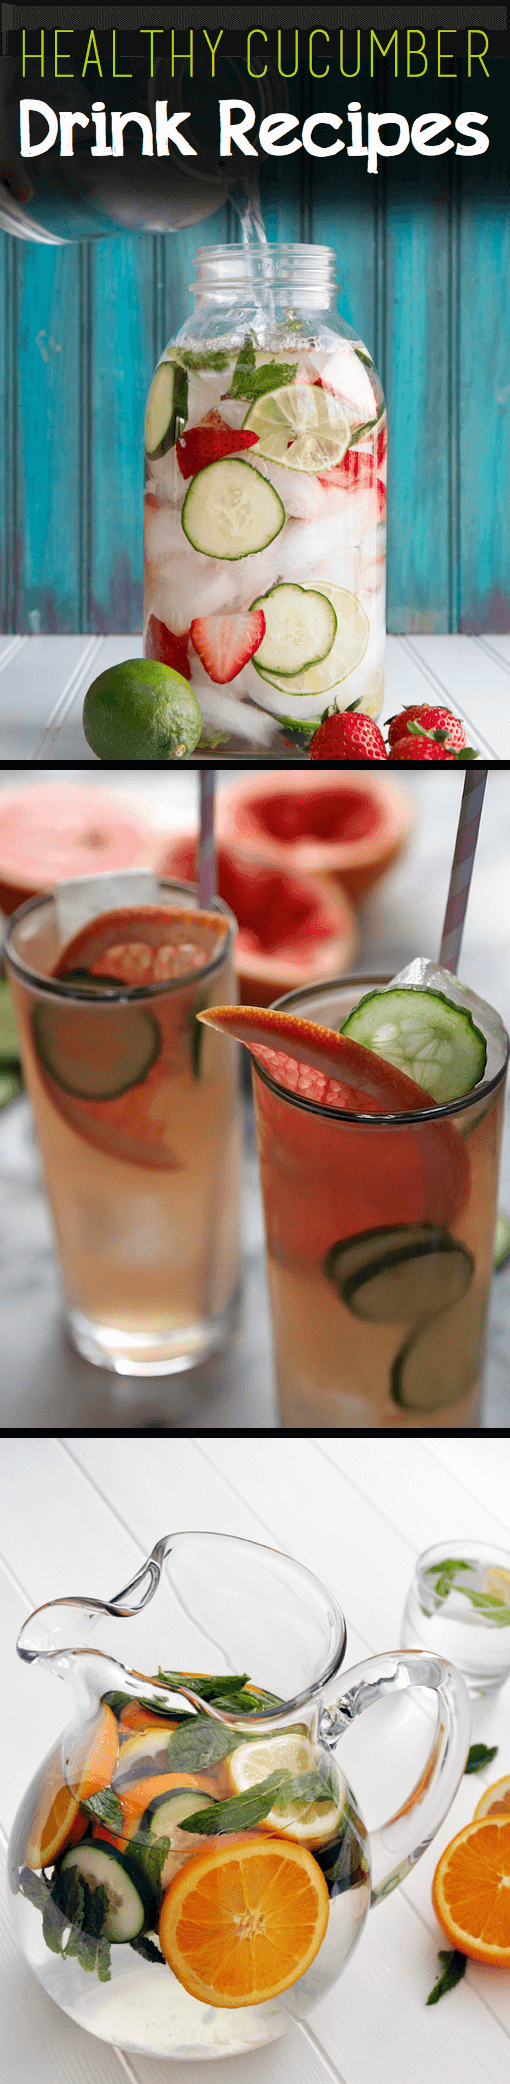 19 Mouth-Watering, Yet Healthy Cucumber Drink Recipes